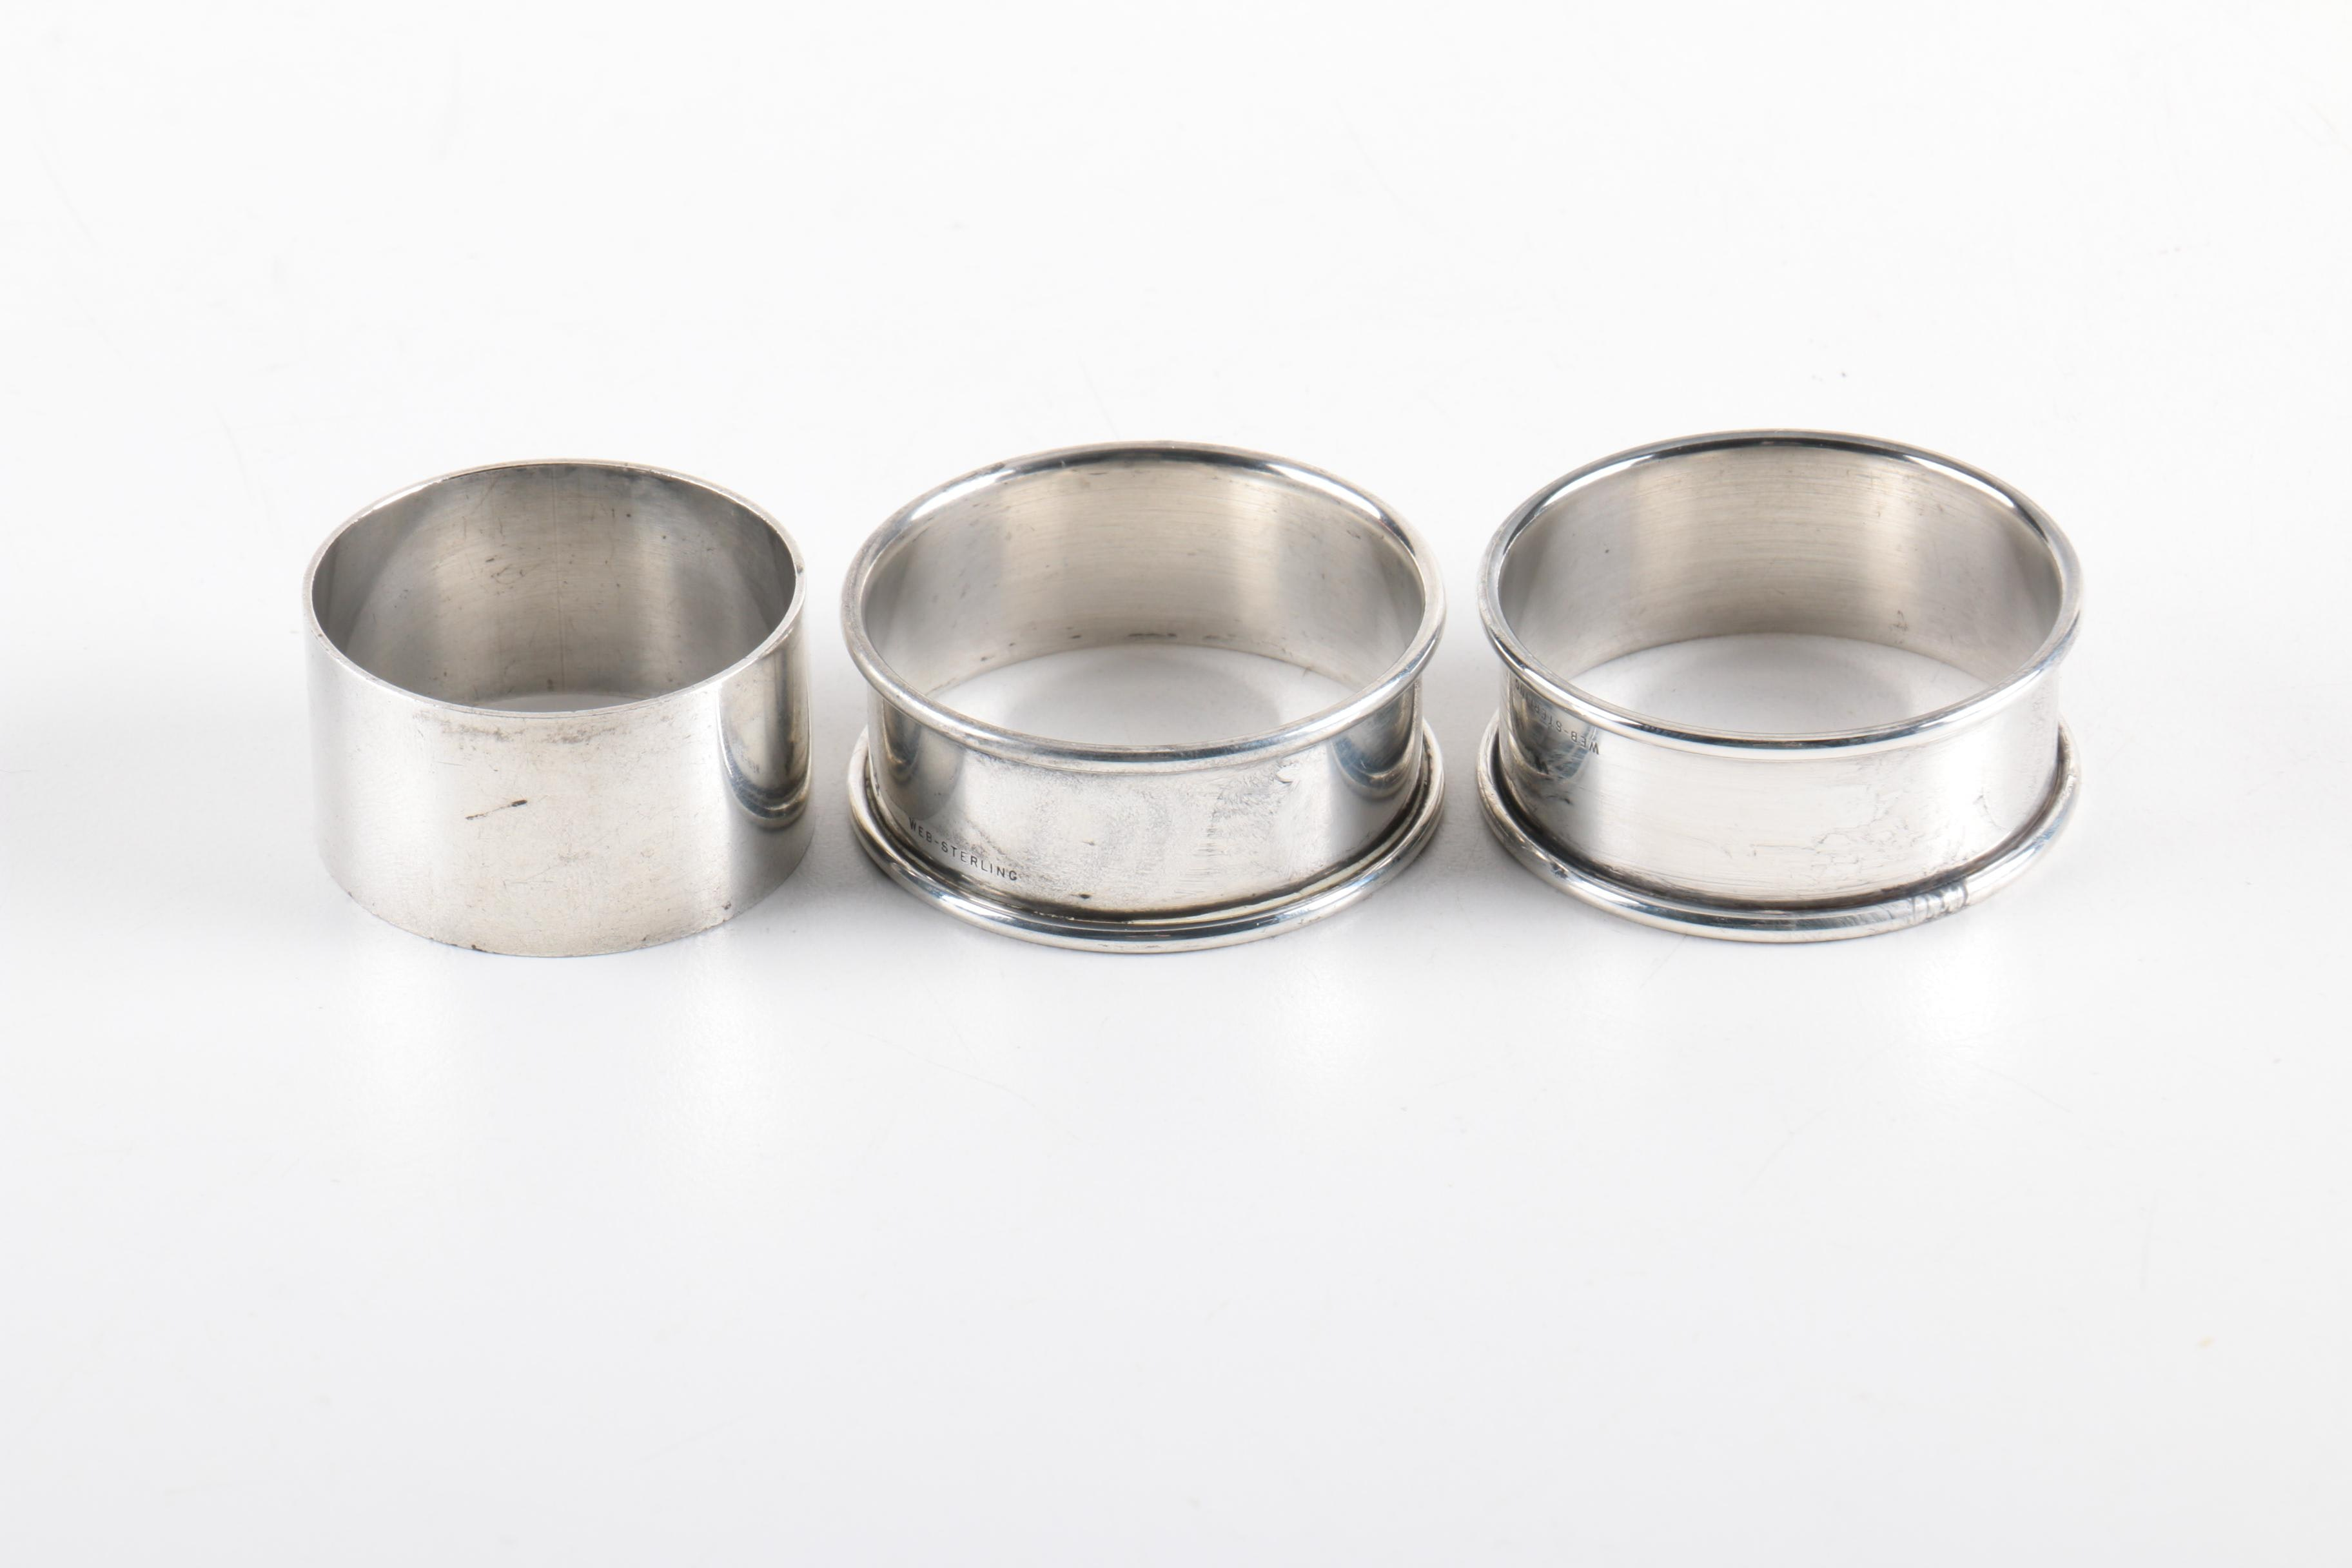 1955 Kirk Stieff and Web Sterling Silver Napkin Rings